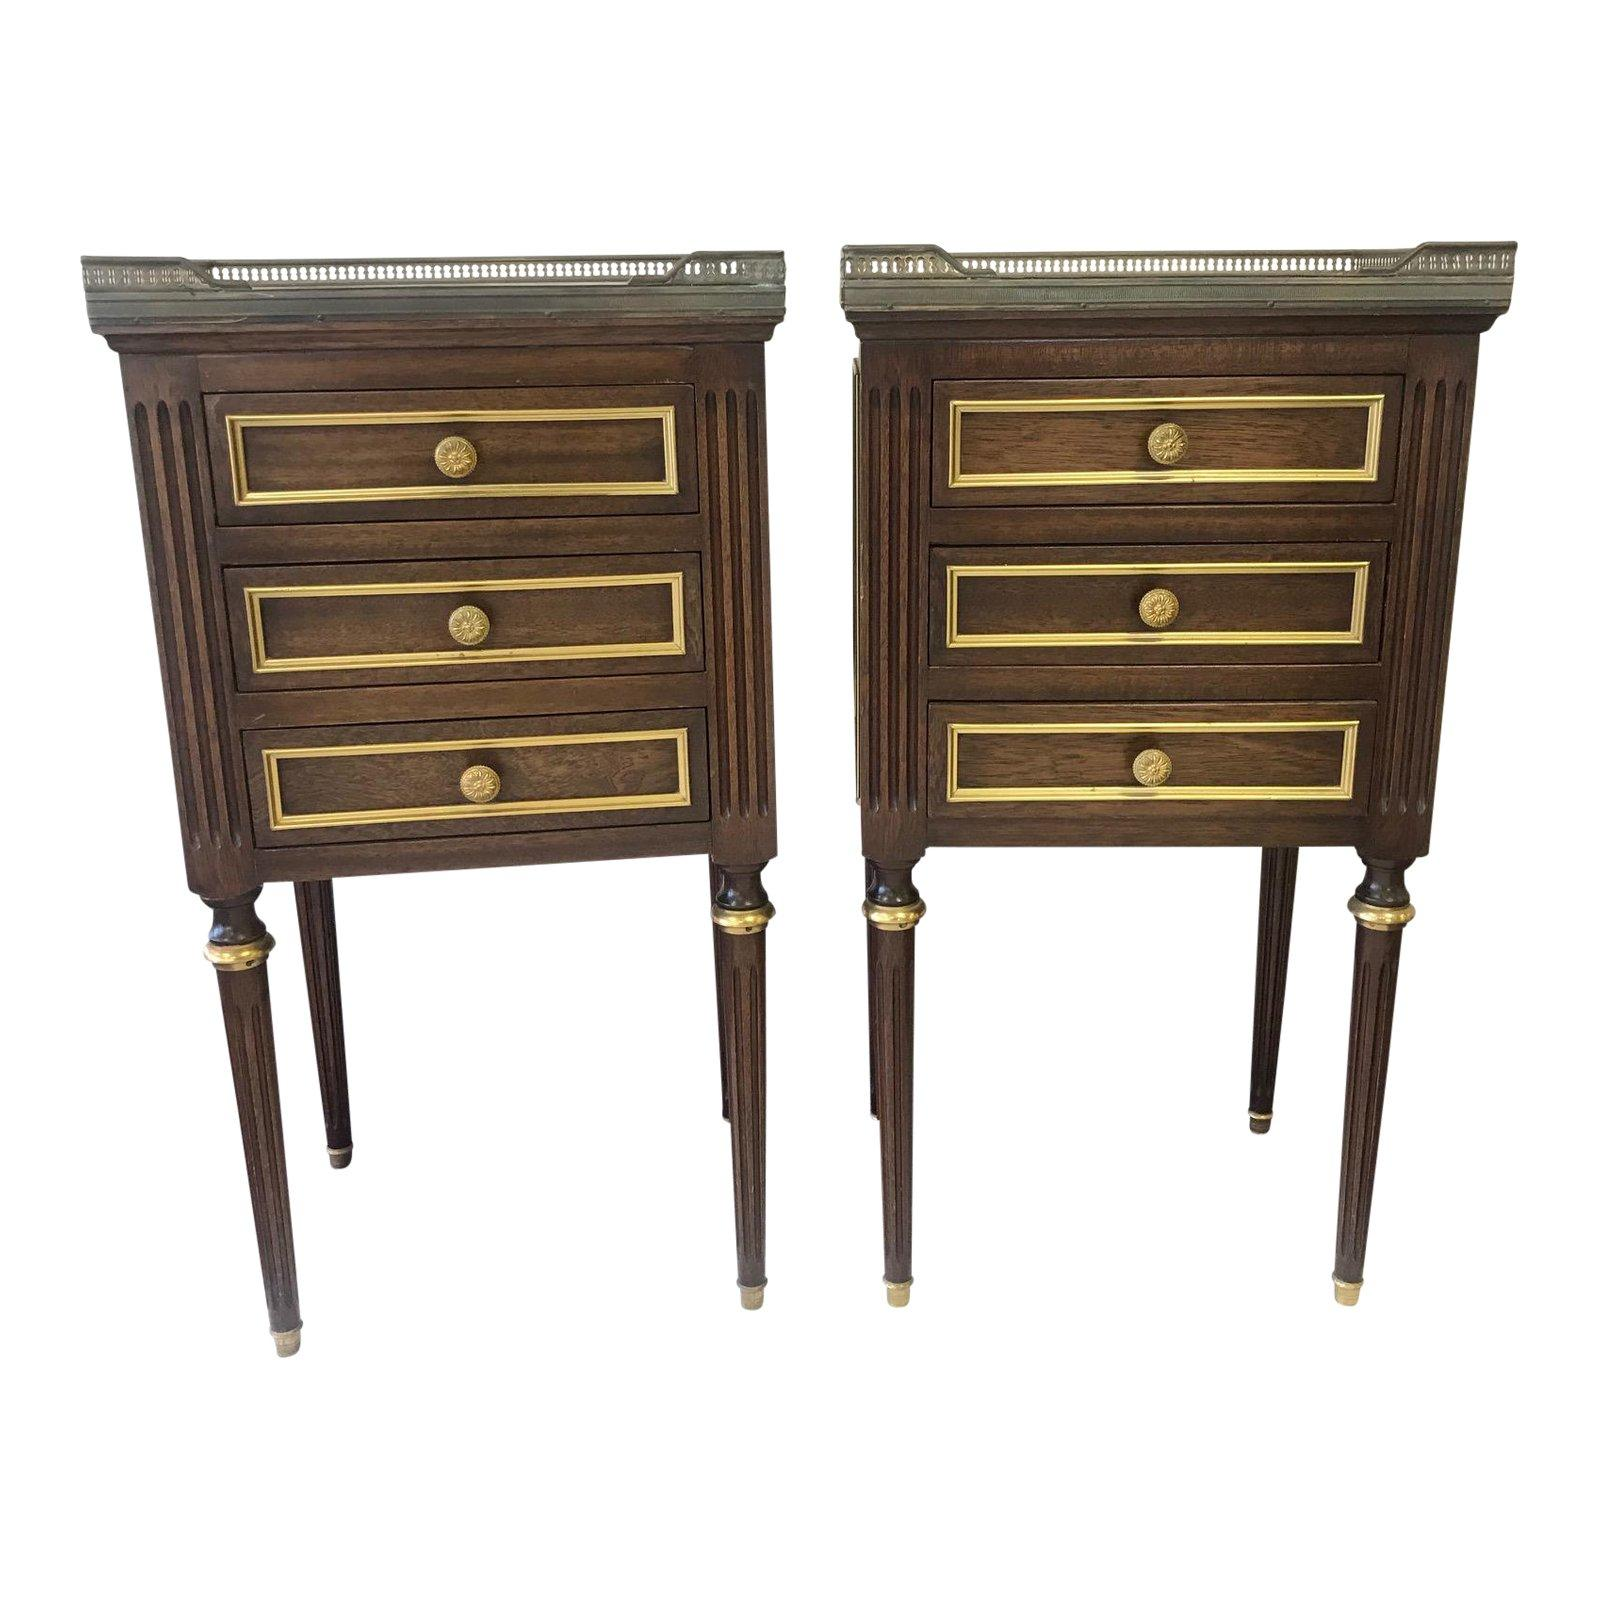 Stunning Elegant Pair Of French Regency Nightstands With 3 Drawers